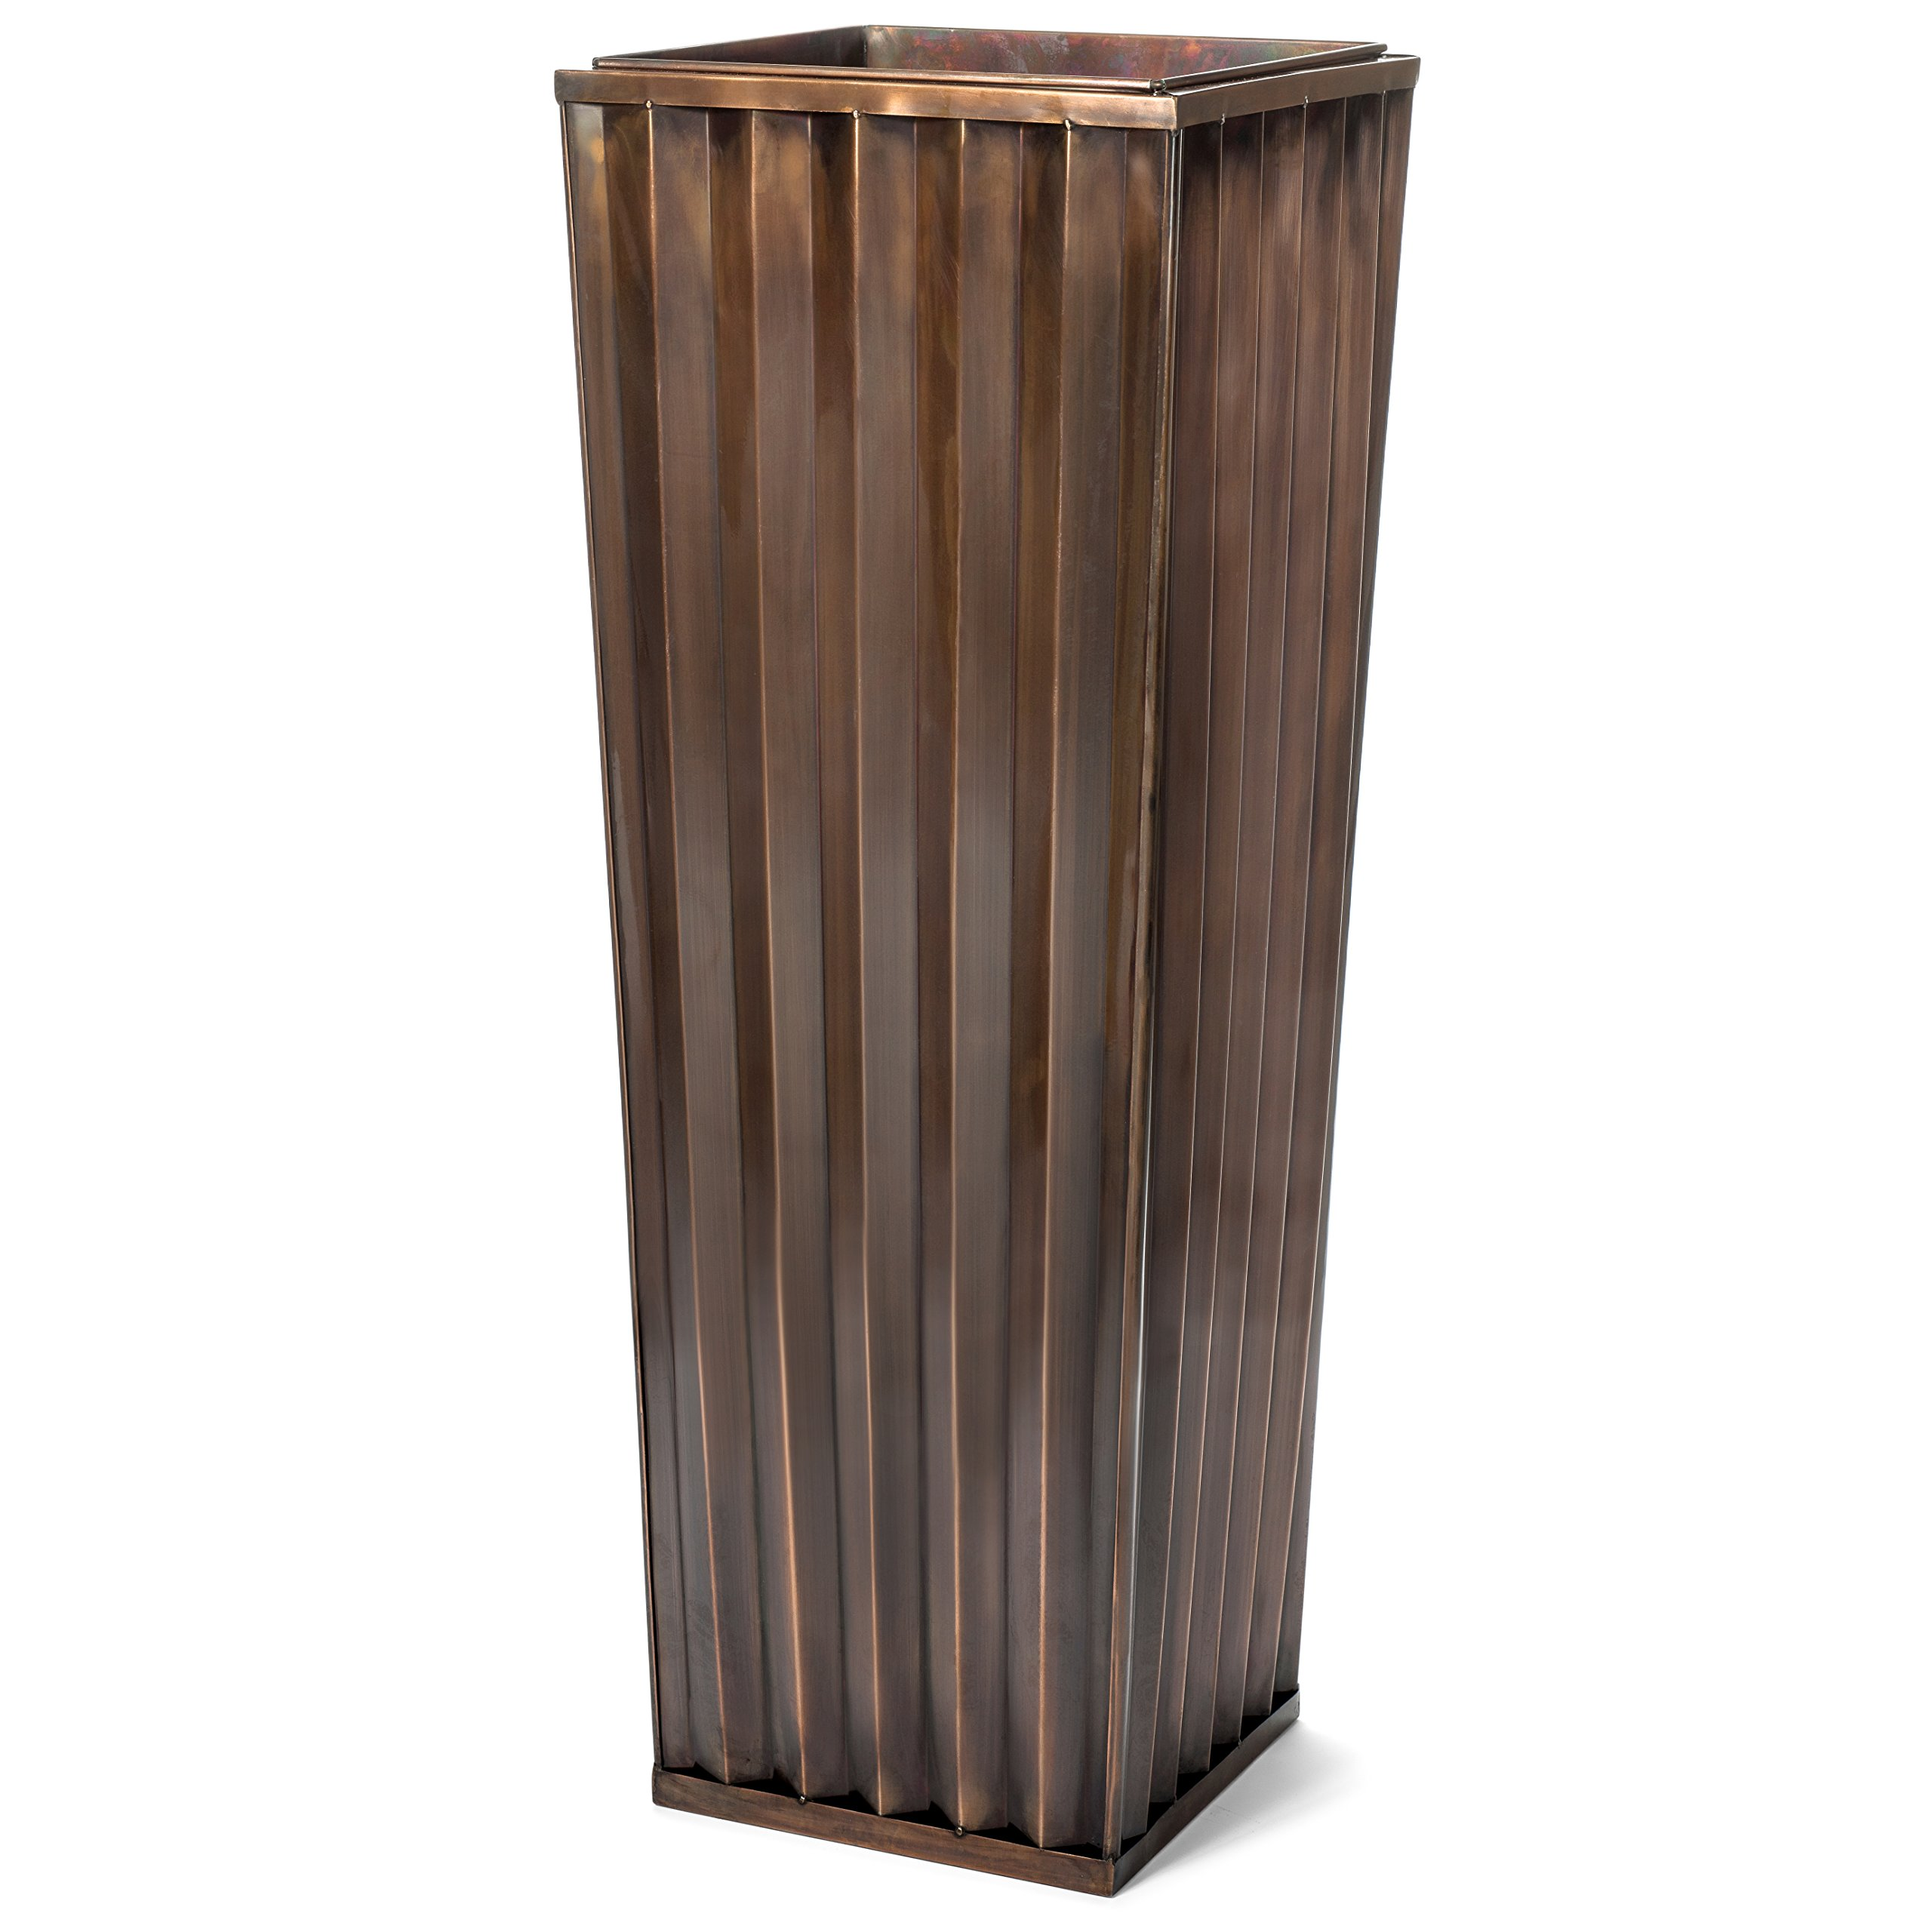 H Potter Tall Outdoor Indoor Planter Patio Deck Flower Ribbed Garden Planters Antique Copper Finish (SMALL) by H Potter